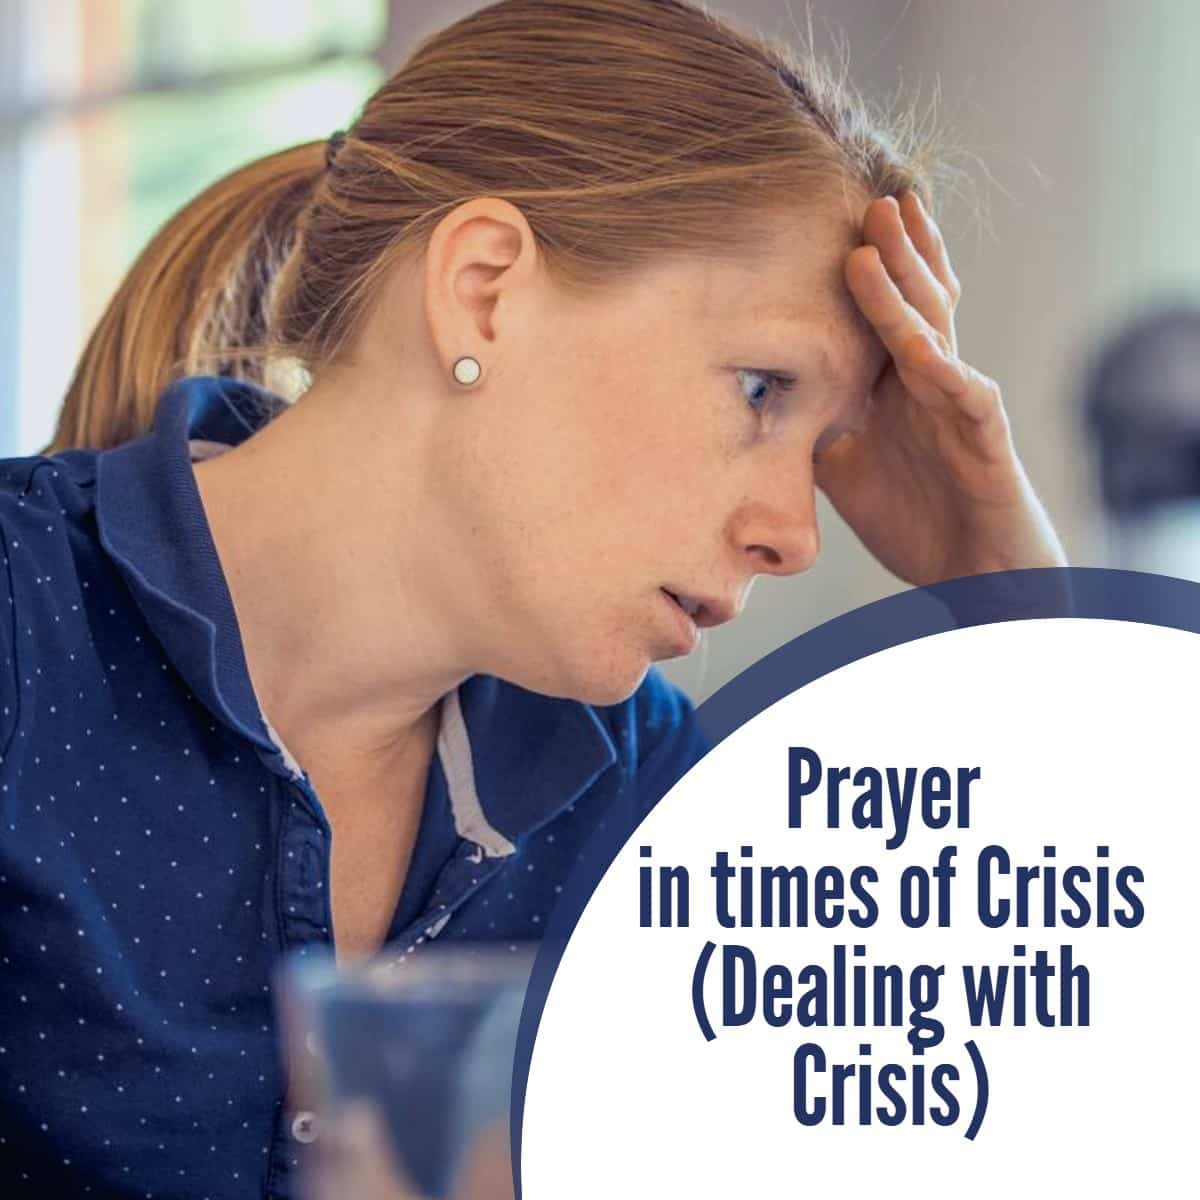 Prayer in a time of crisis